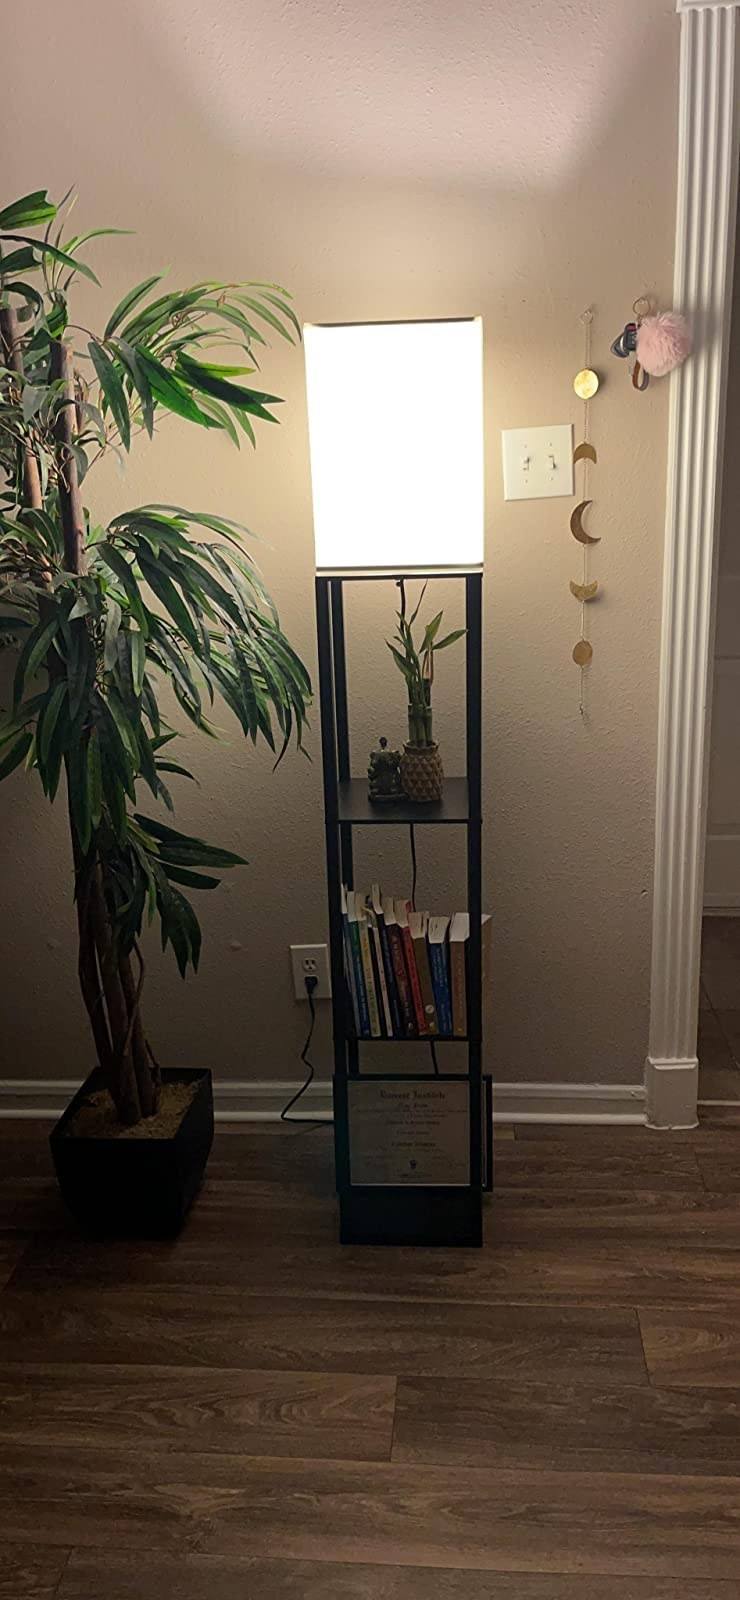 The slim, rectangular-shaped lamp with three shelves underneath the light